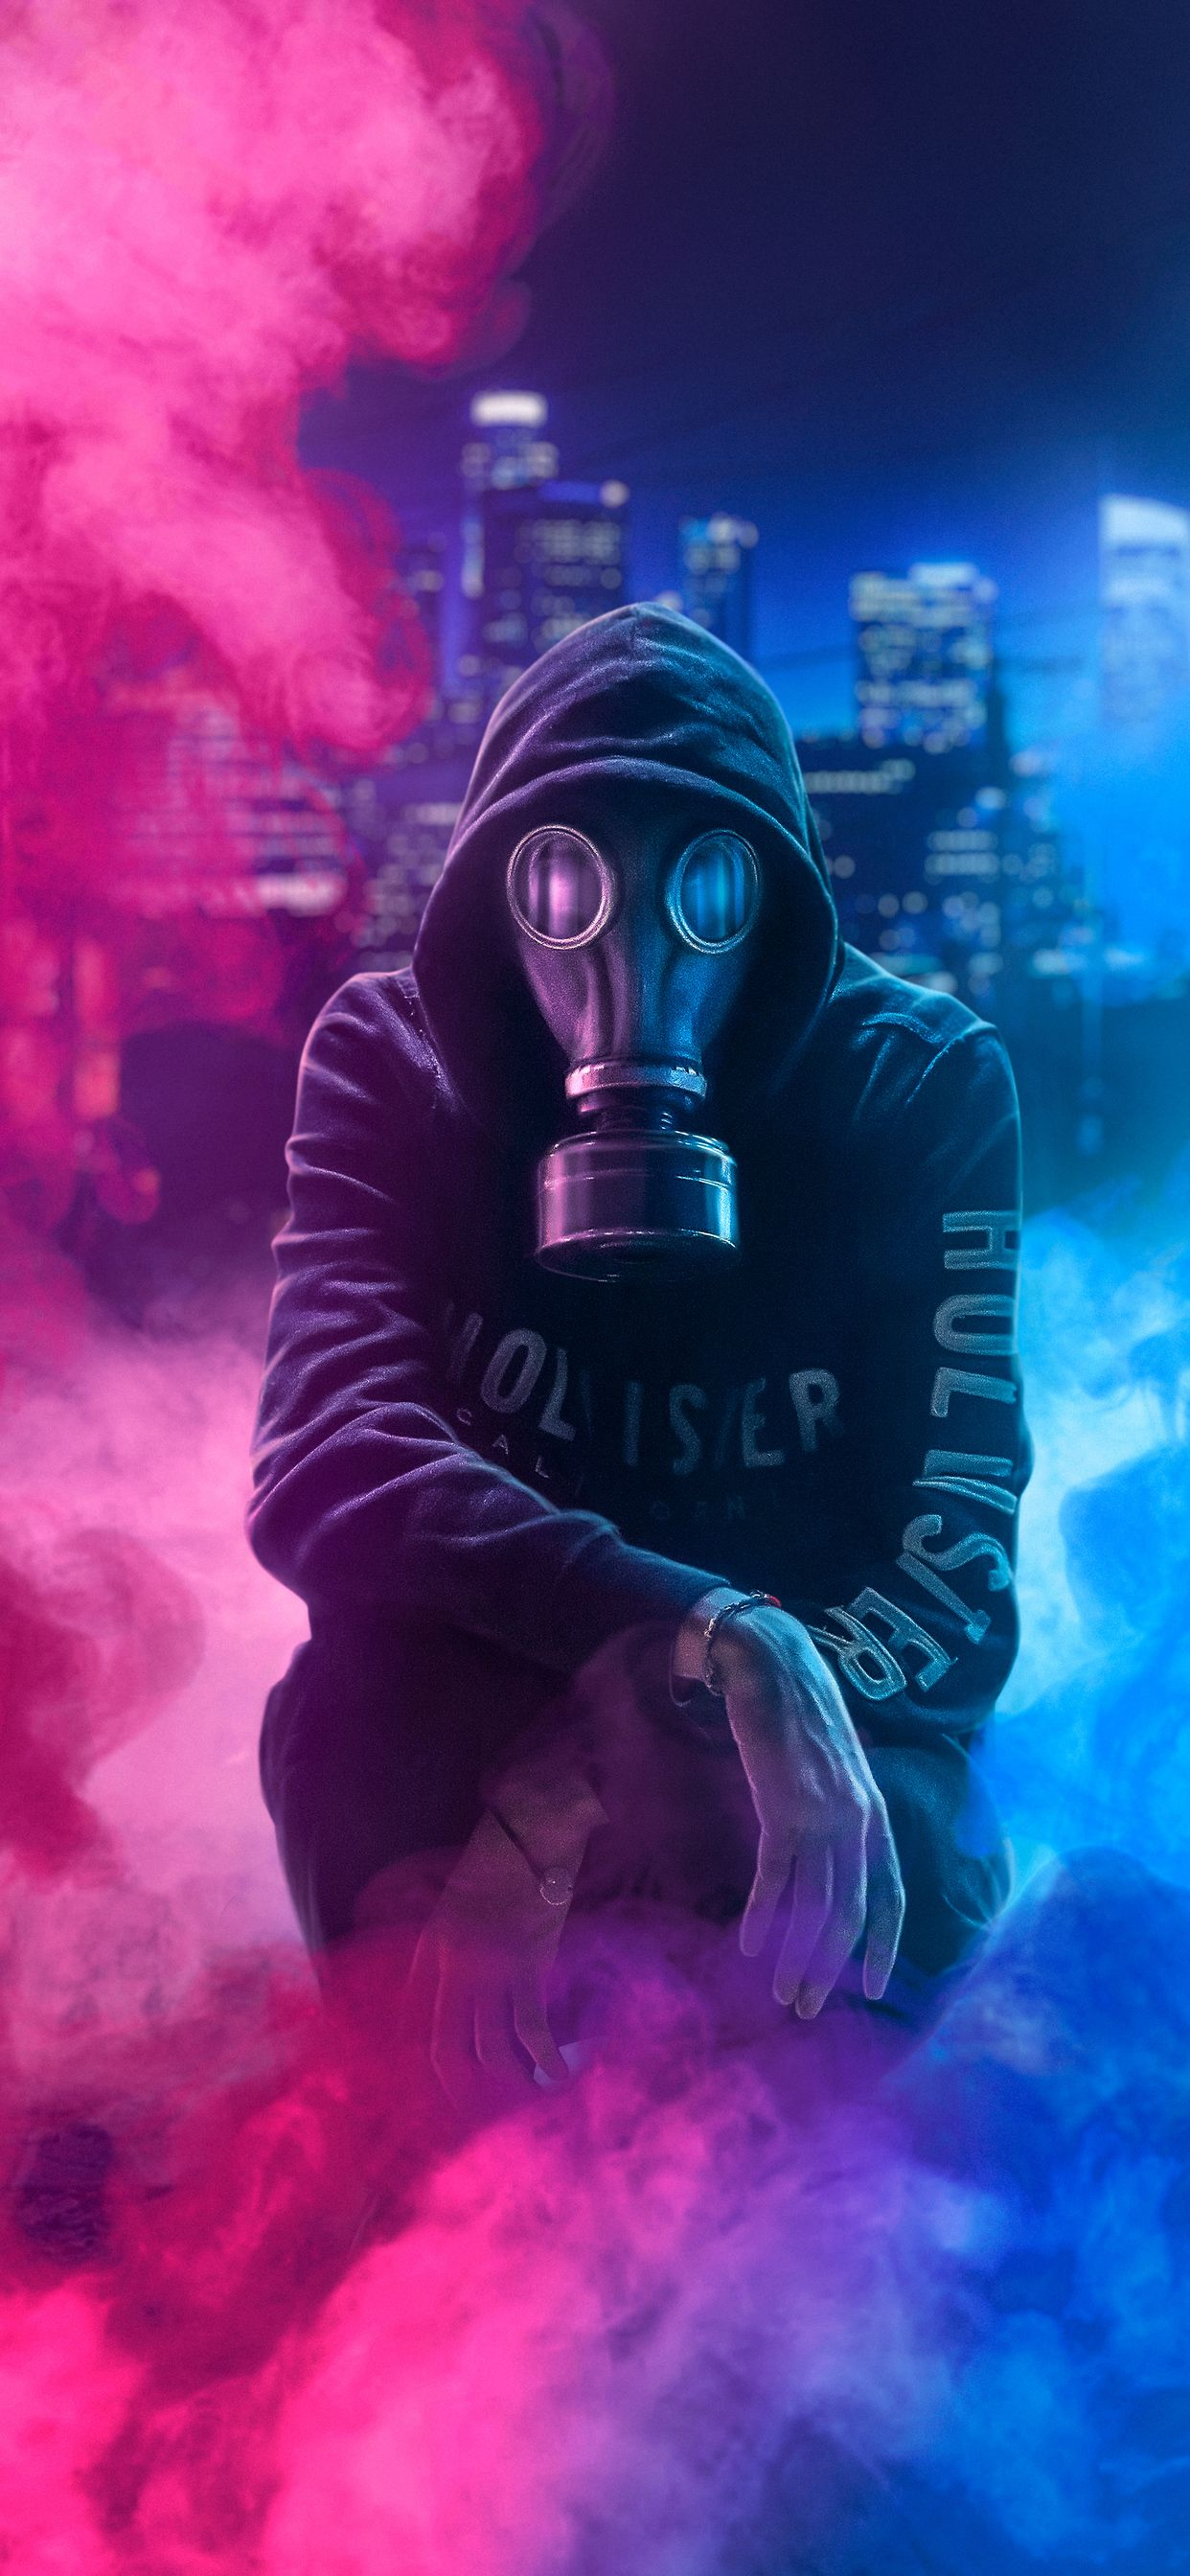 Anime Gas Mask Iphone Wallpaper Iphone Wallpaper For Guys Cool